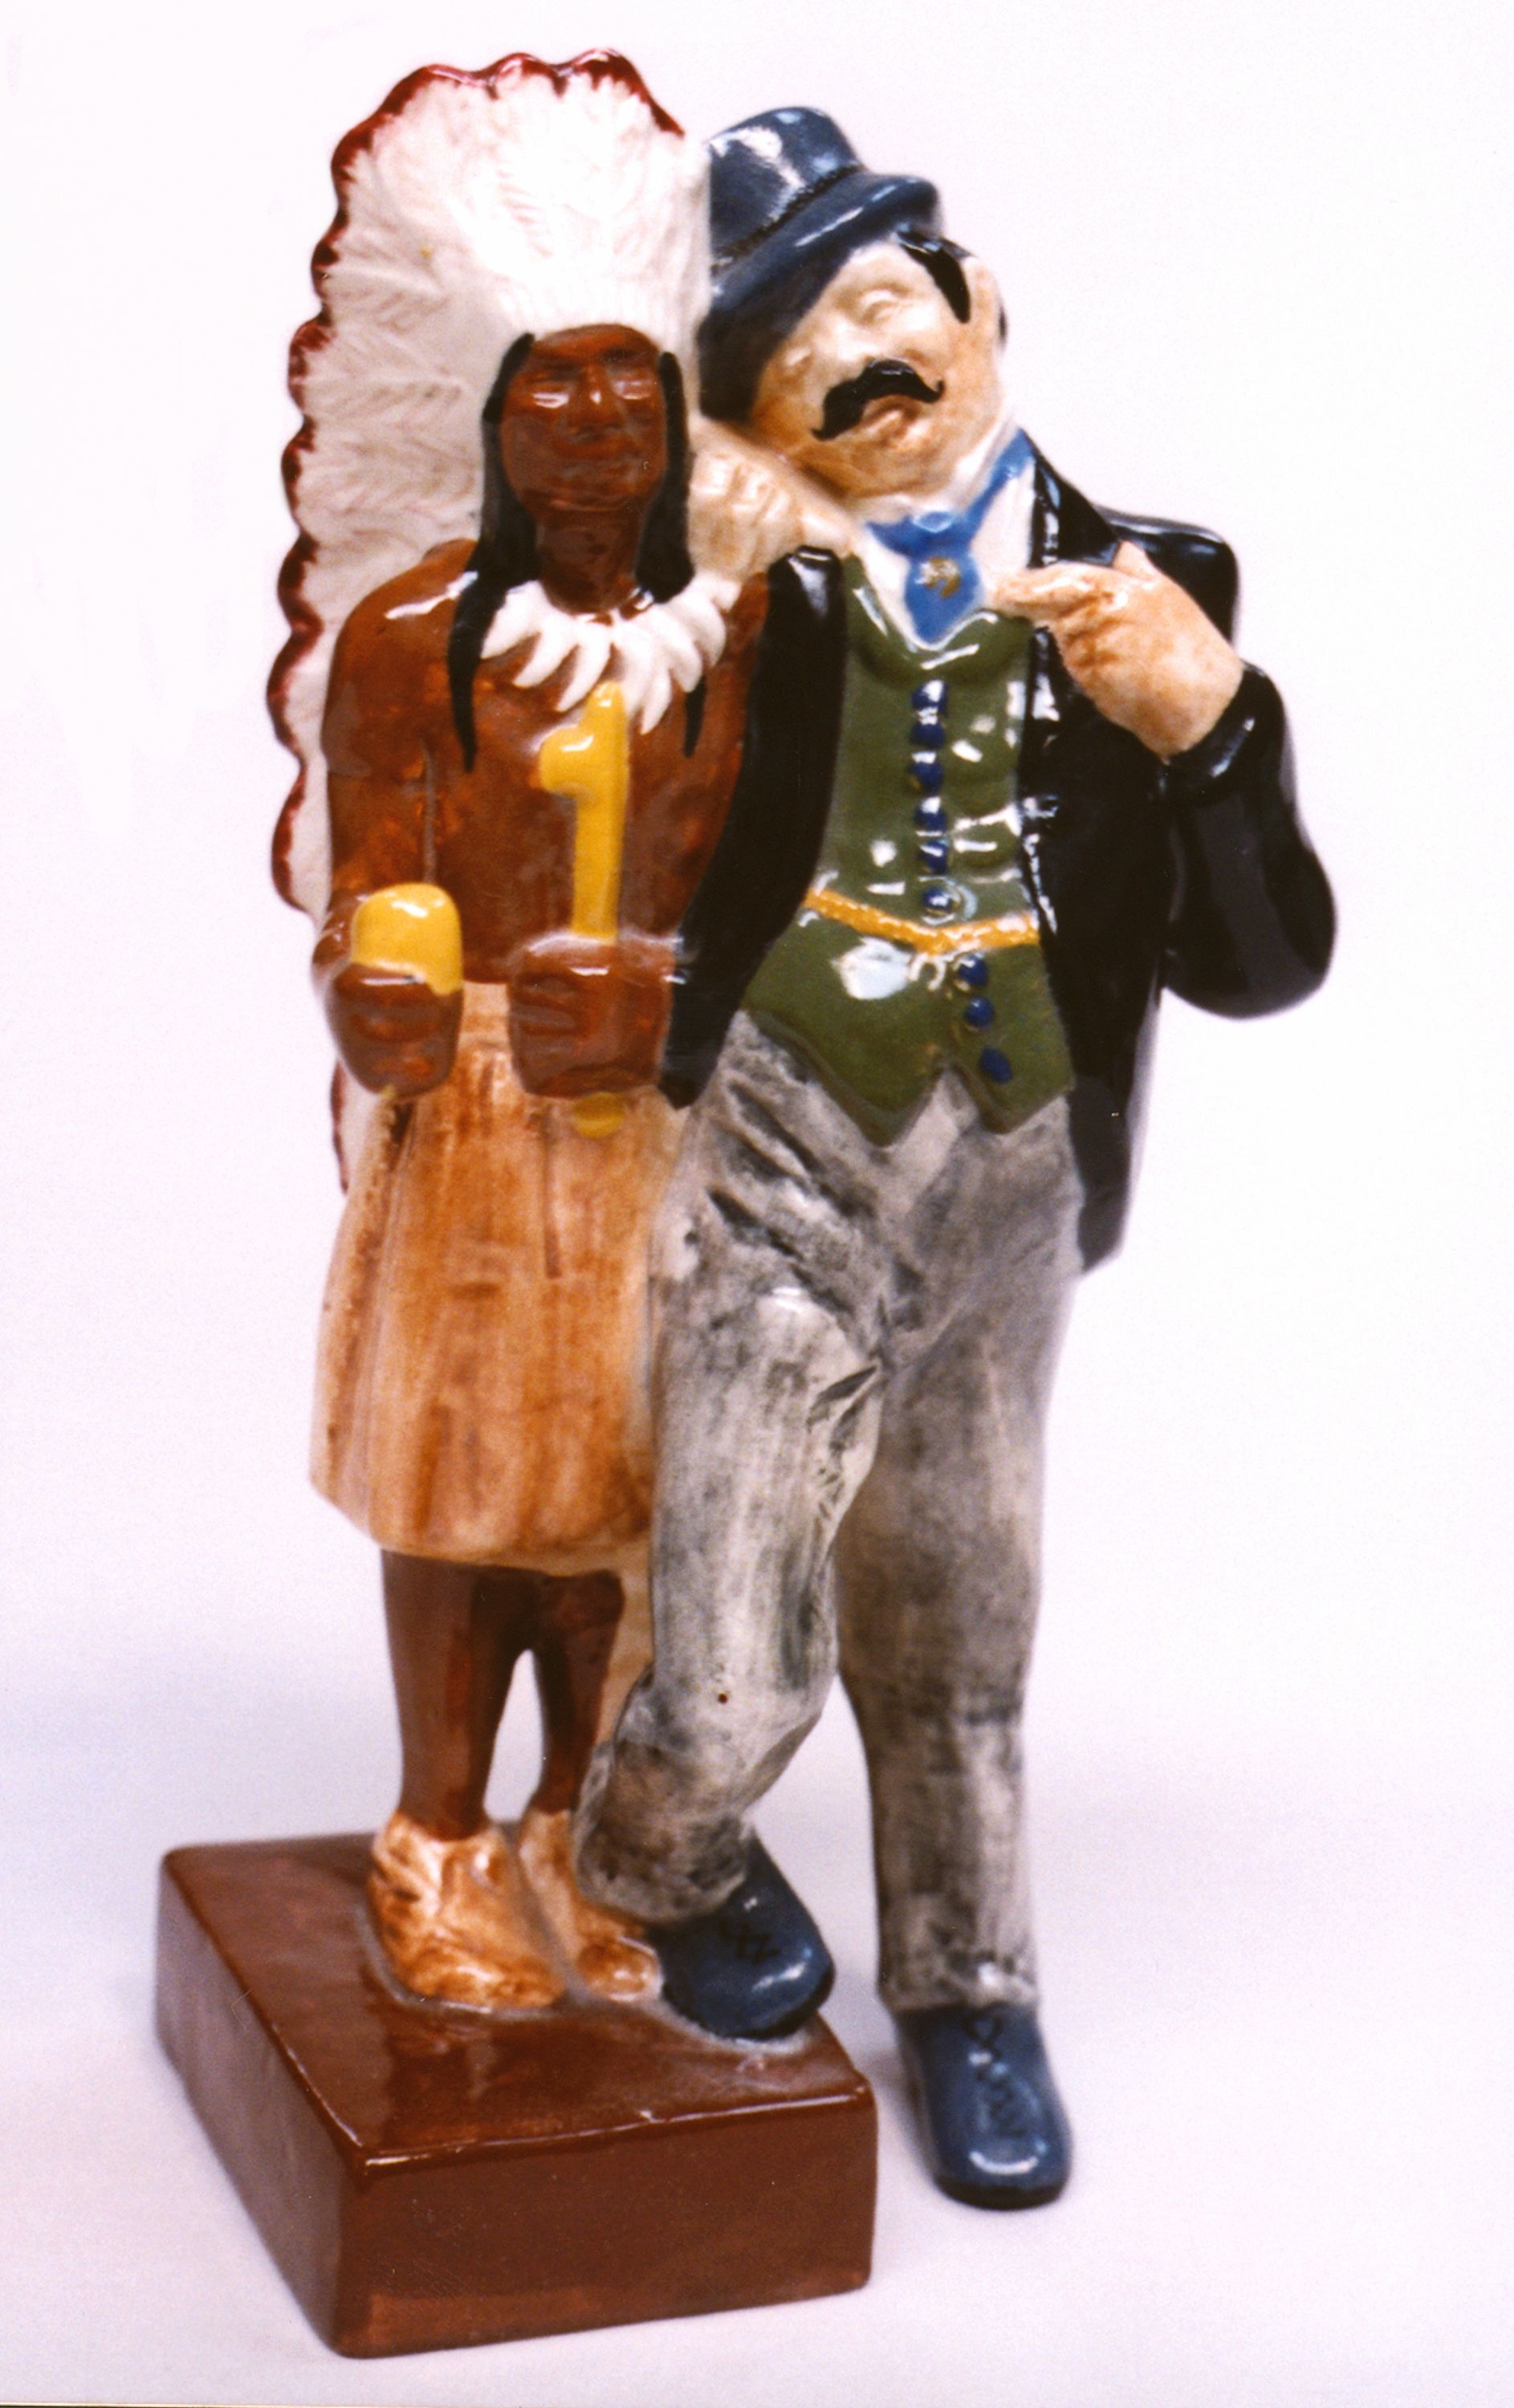 From the Gay Nineties series of figurines the 1940s, this 9 ½-inch man in period attire posing with a cigar store Indian is one of its harder-to-find items.